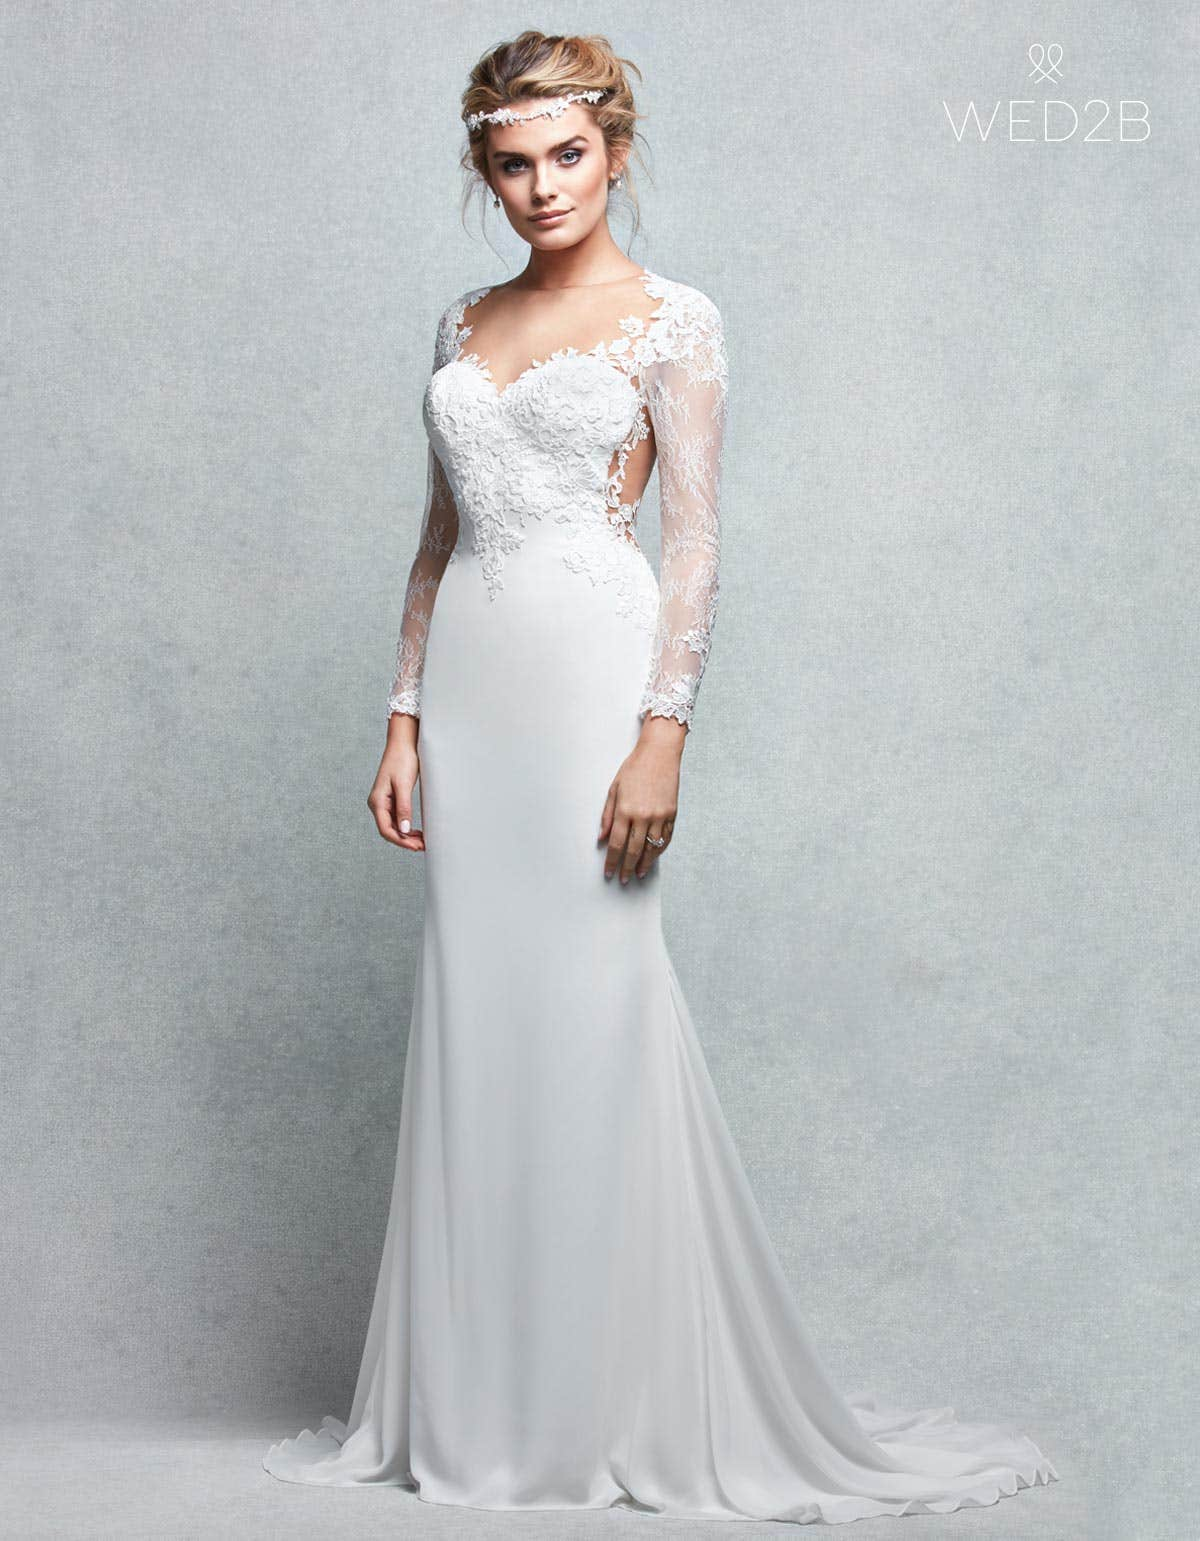 Destination Wedding Dress - Priya